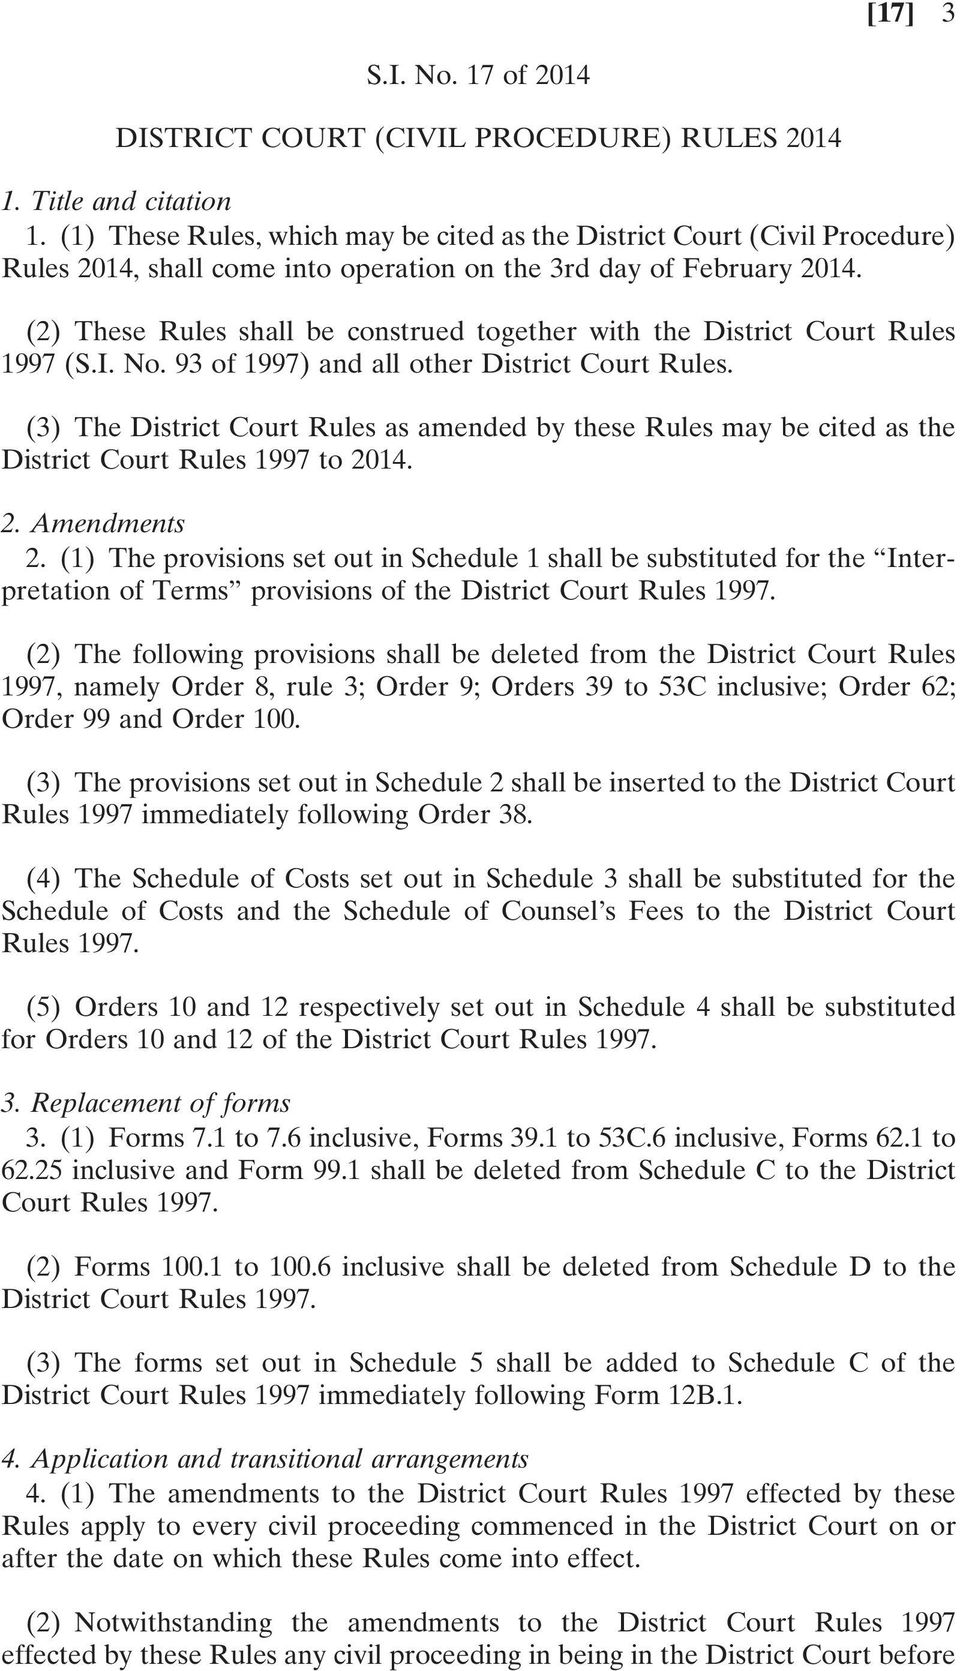 (2) These Rules shall be construed together with the District Court Rules 1997 (S.I. No. 93 of 1997) and all other District Court Rules.